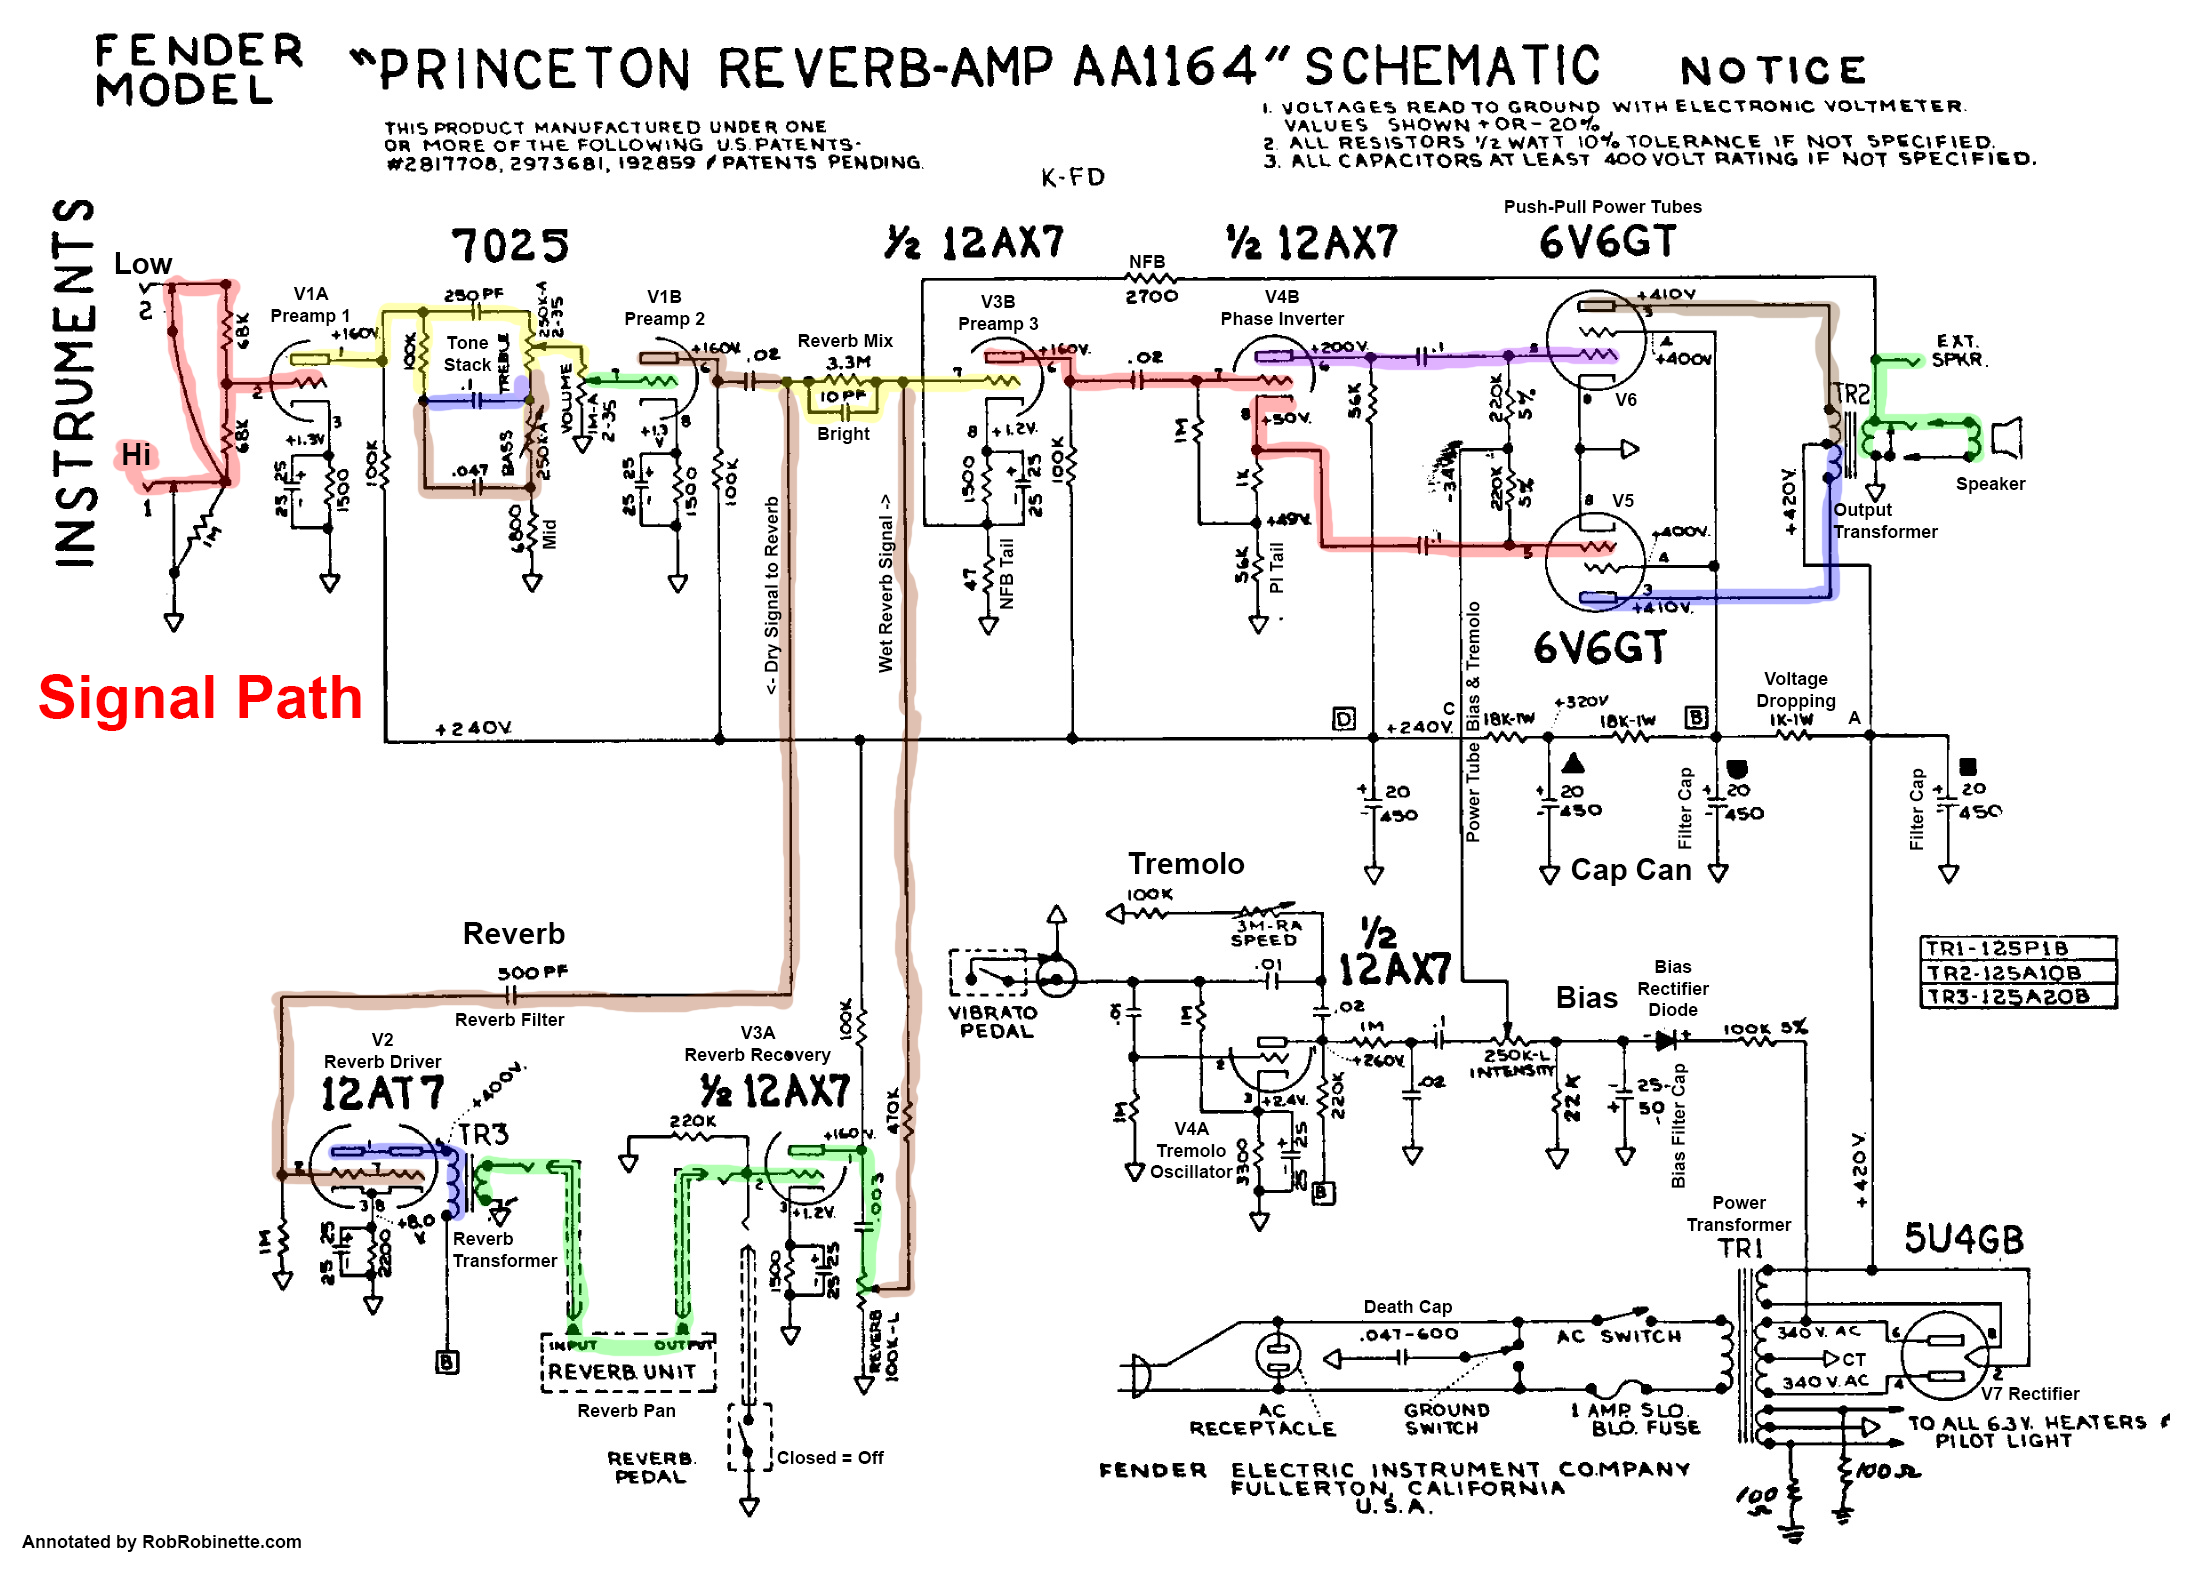 Pleasing Guitar Amp Diagram Wiring Diagram Data Wiring 101 Mentrastrewellnesstrialsorg